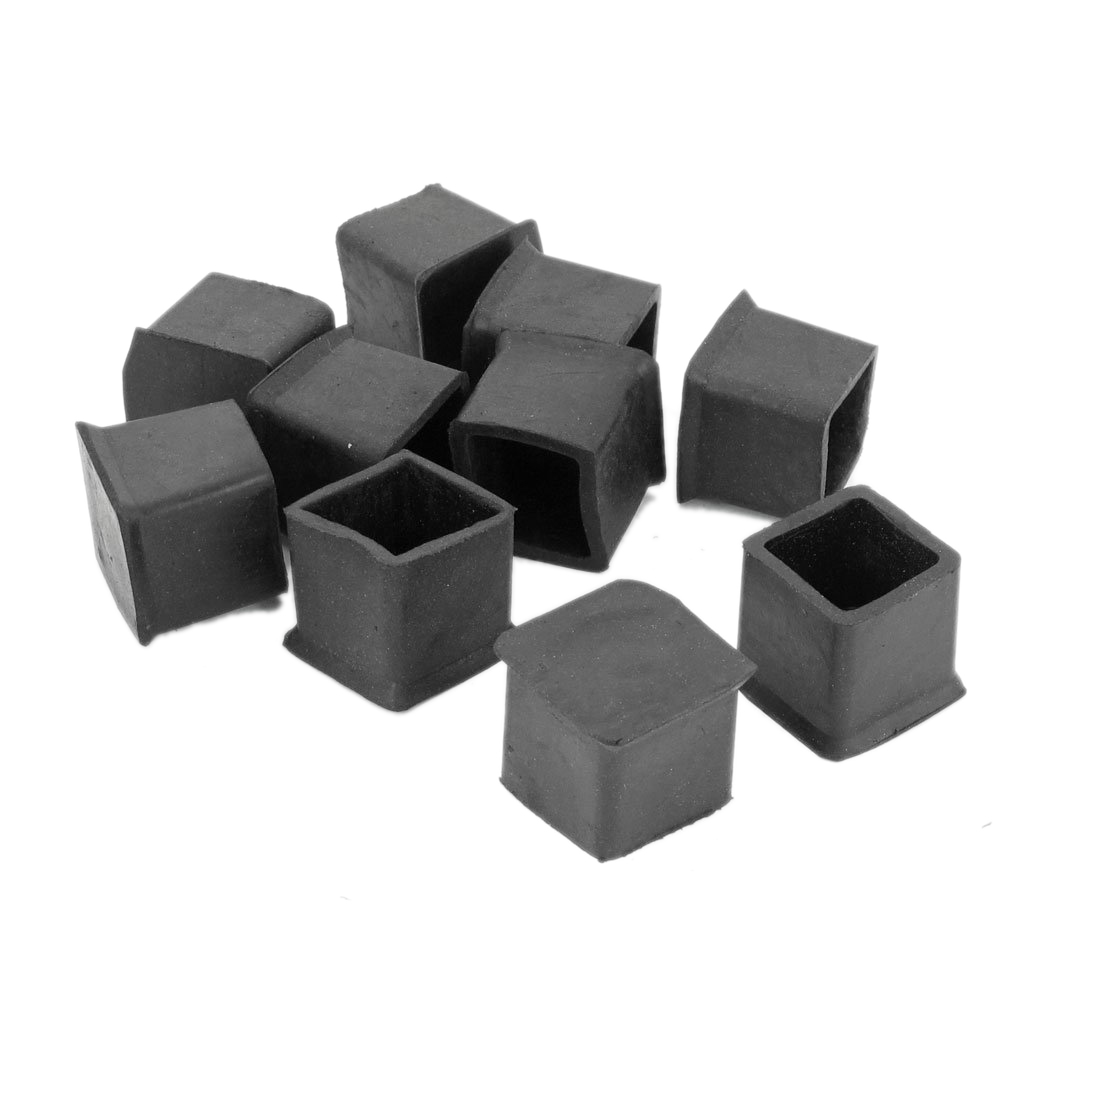 GSFY! 10 Pcs Rubber 25mm x 25mm Furniture Chair Legs Covers Protectors